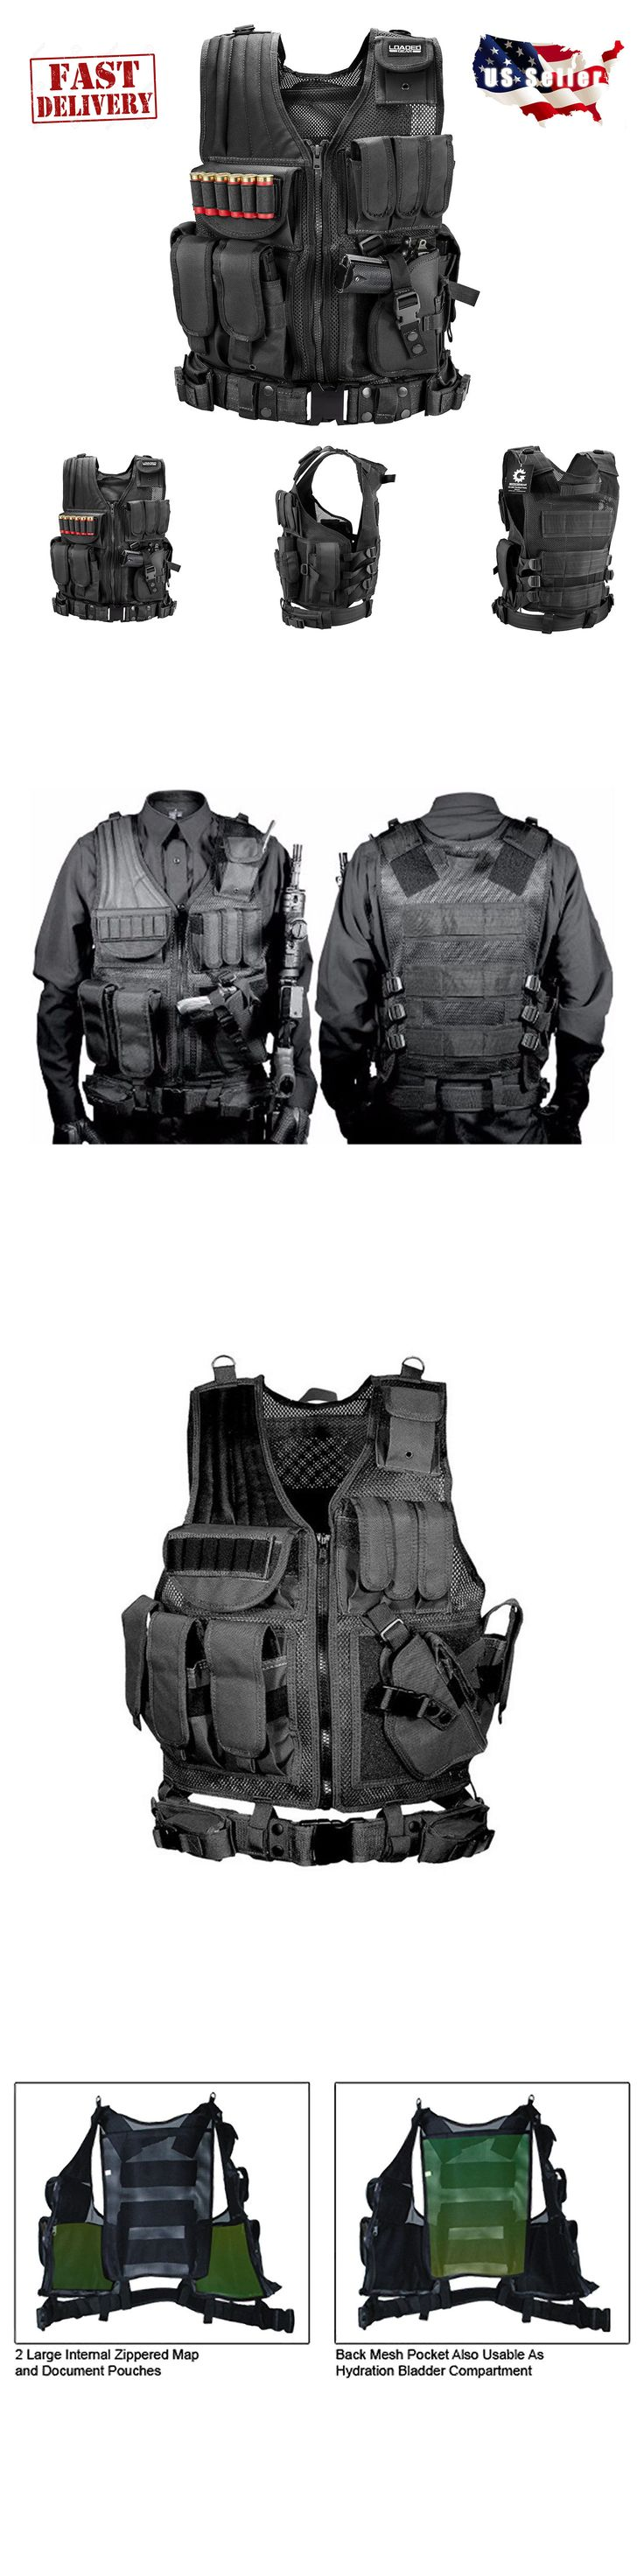 Chest Rigs and Tactical Vests 177891: Tactical Military Vest Swat Molle Assault Combat Gear Police Black Holster Ammo -> BUY IT NOW ONLY: $51.99 on eBay!